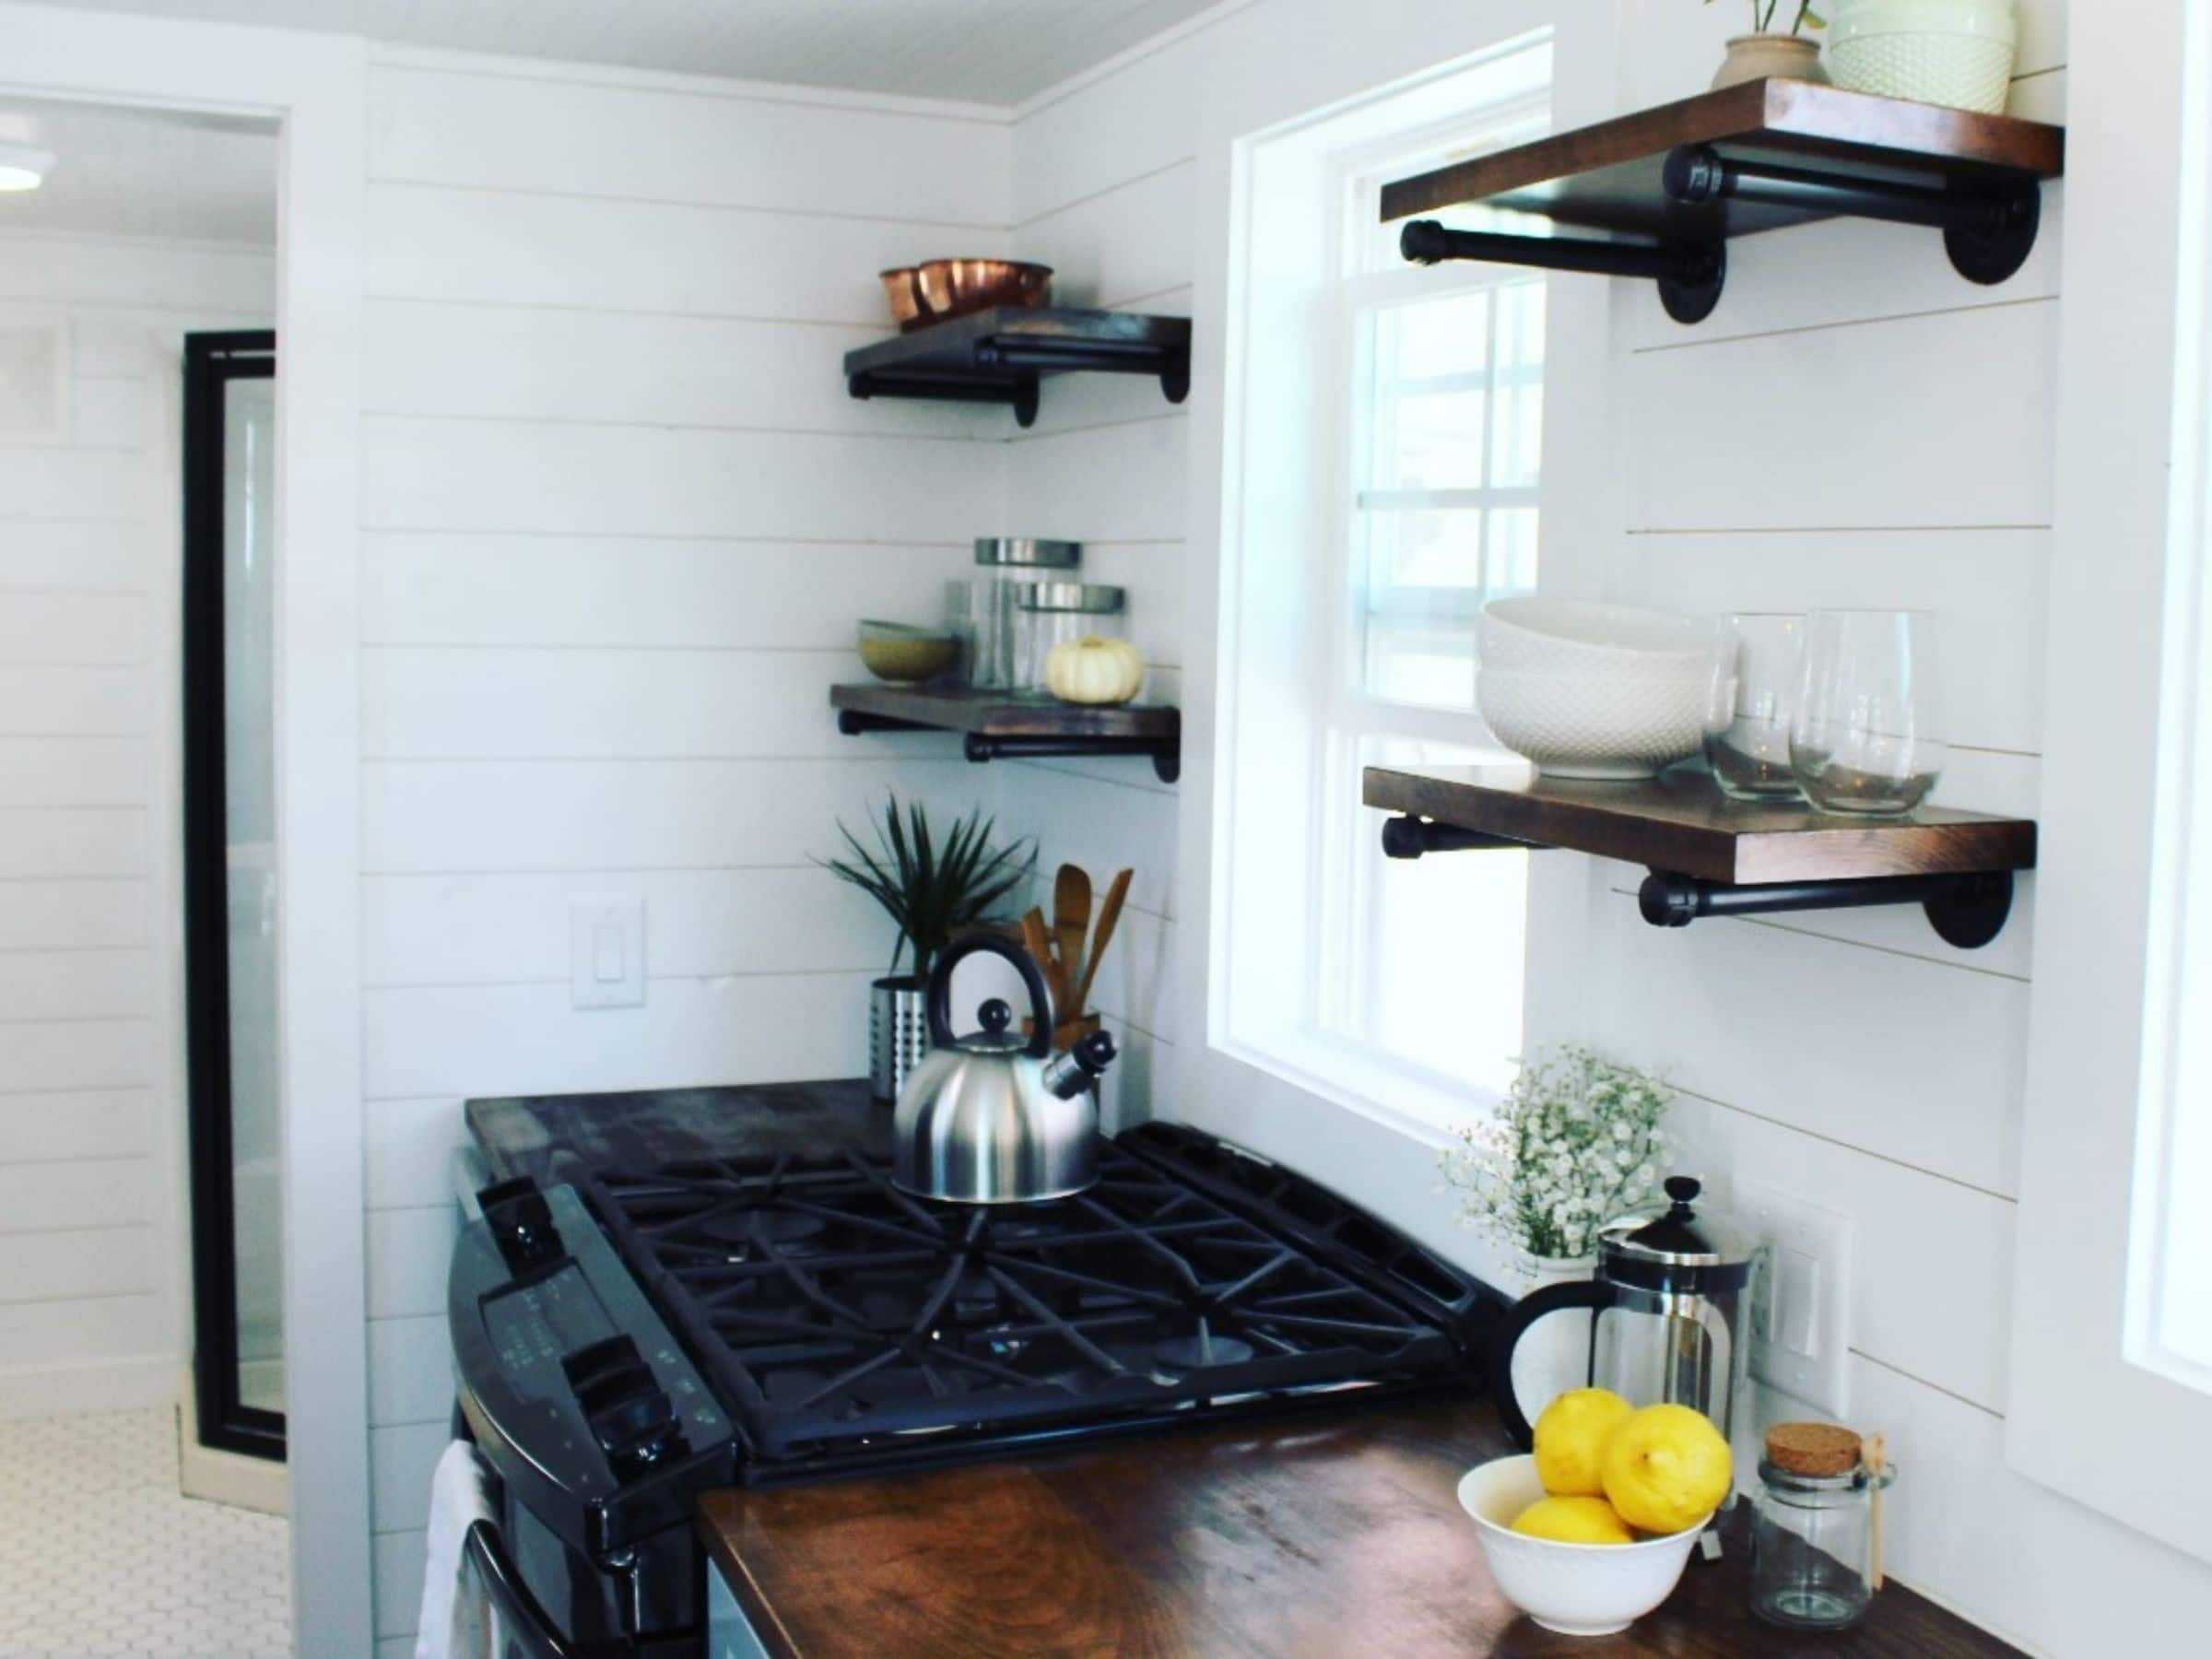 Kitchen counter with black top gas stove under window